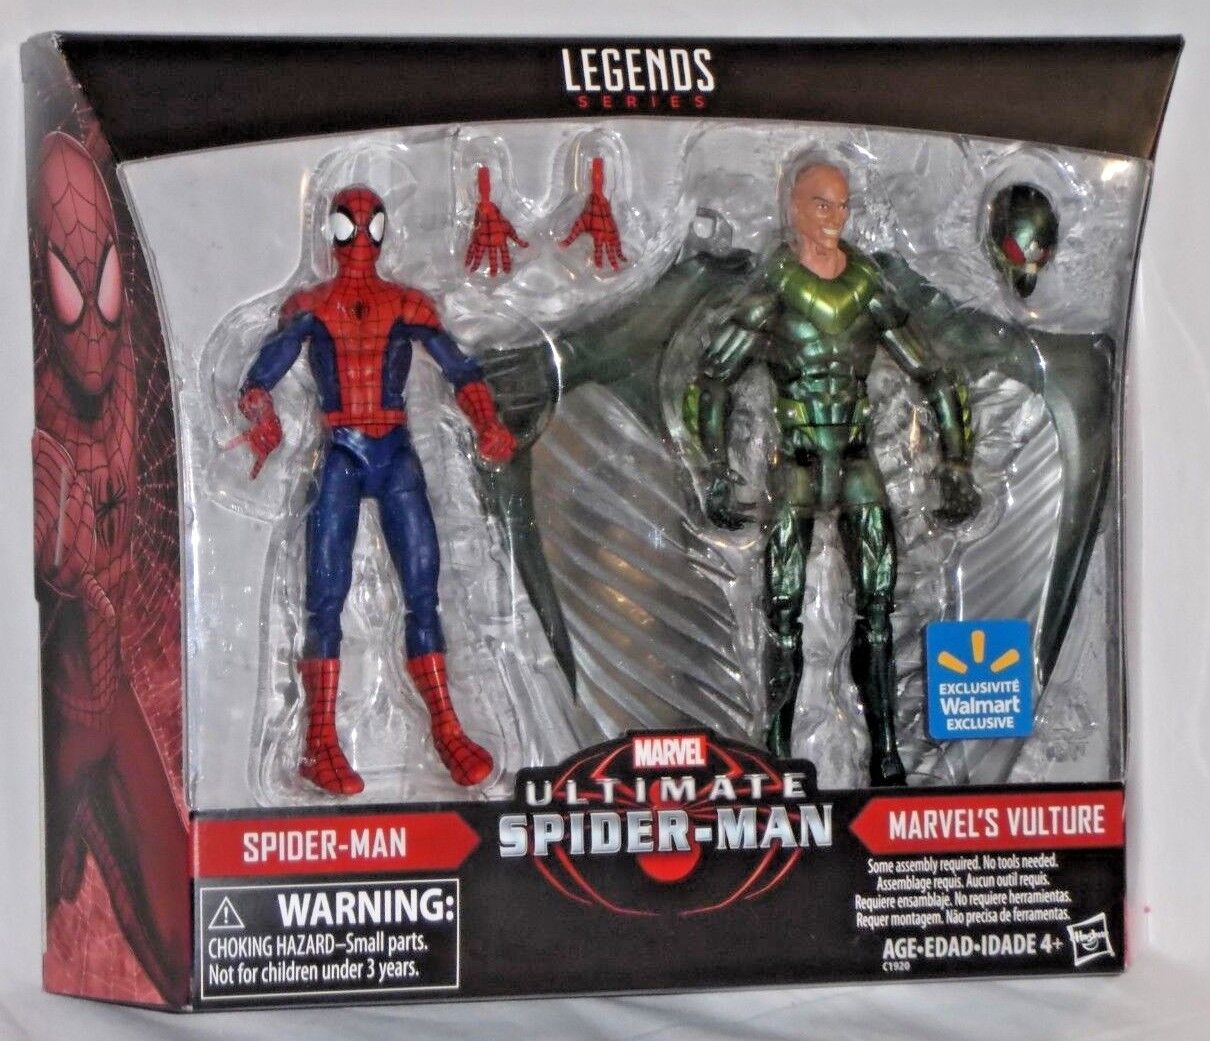 WALMART Exclusive Marvel Legends ULTIMATE SPIDERMAN vs VULTURE Action Figure set